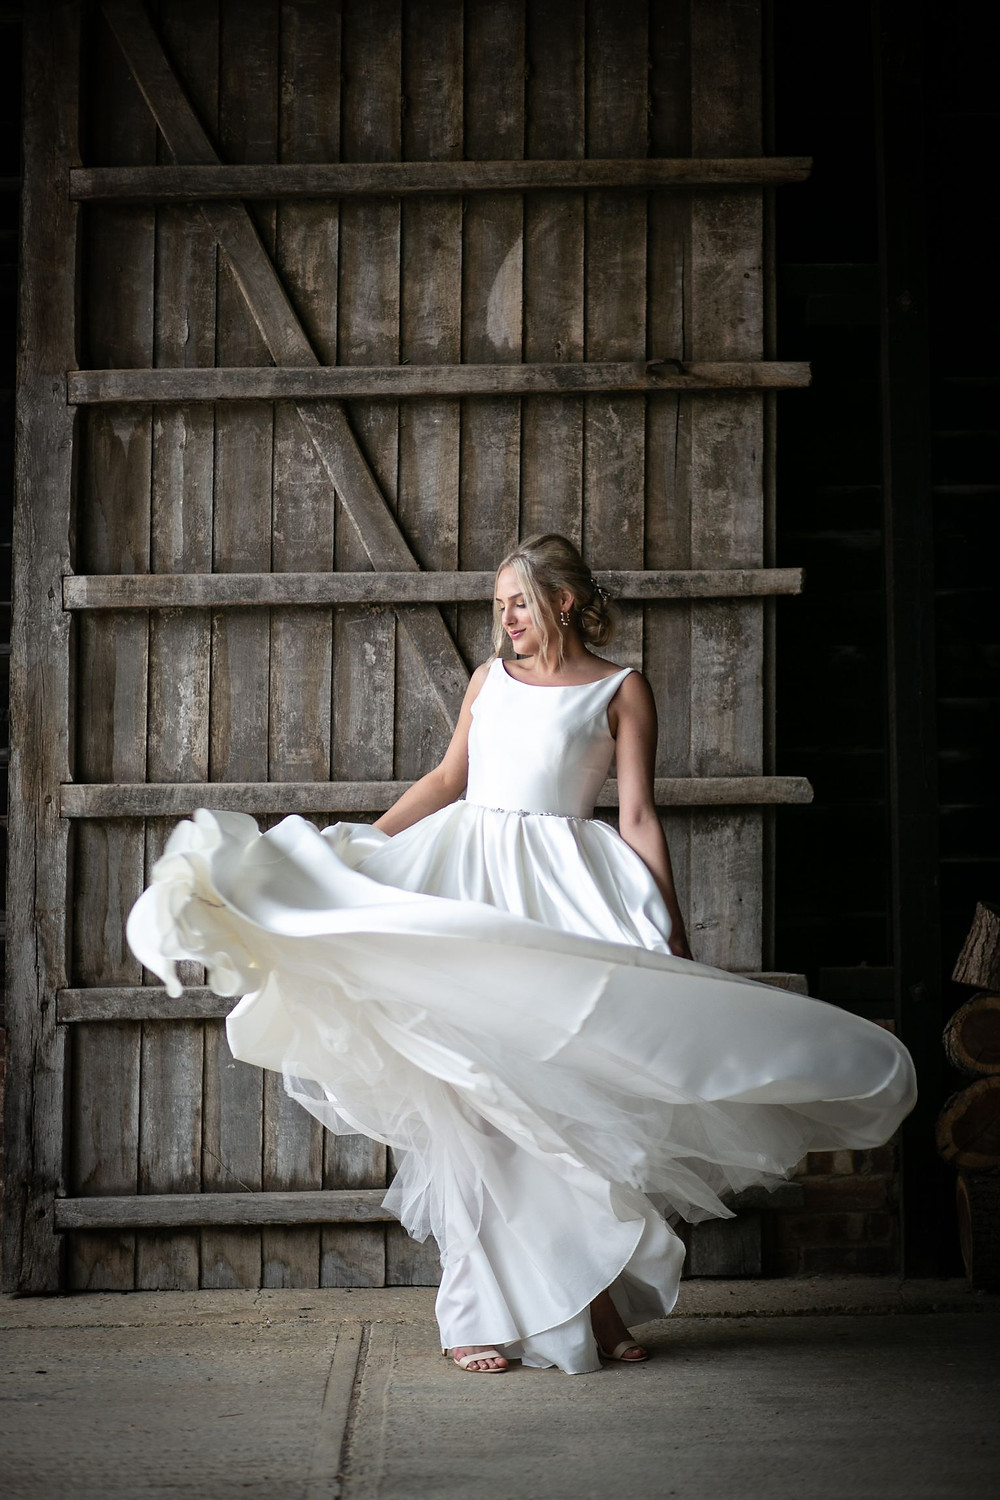 Photographed by John Knight | Bride spinning in wedding dress in front of big wooden door